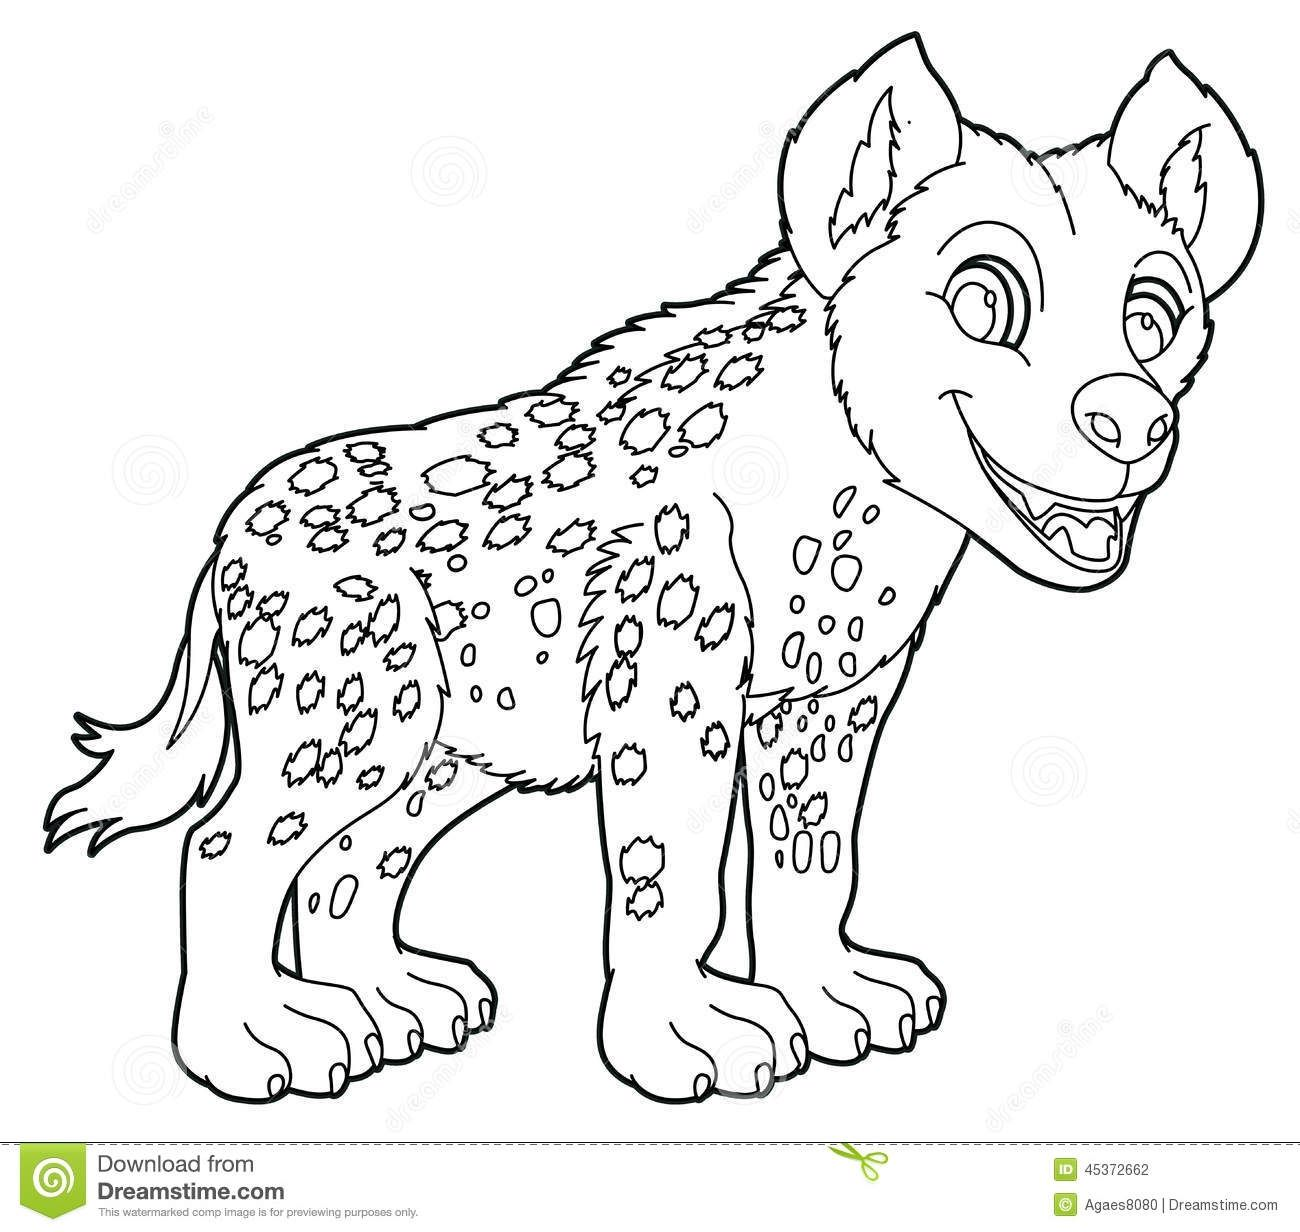 Hyenas Coloring Pages Gallery Coloring Pages Animal Coloring Pages Jungle Animals